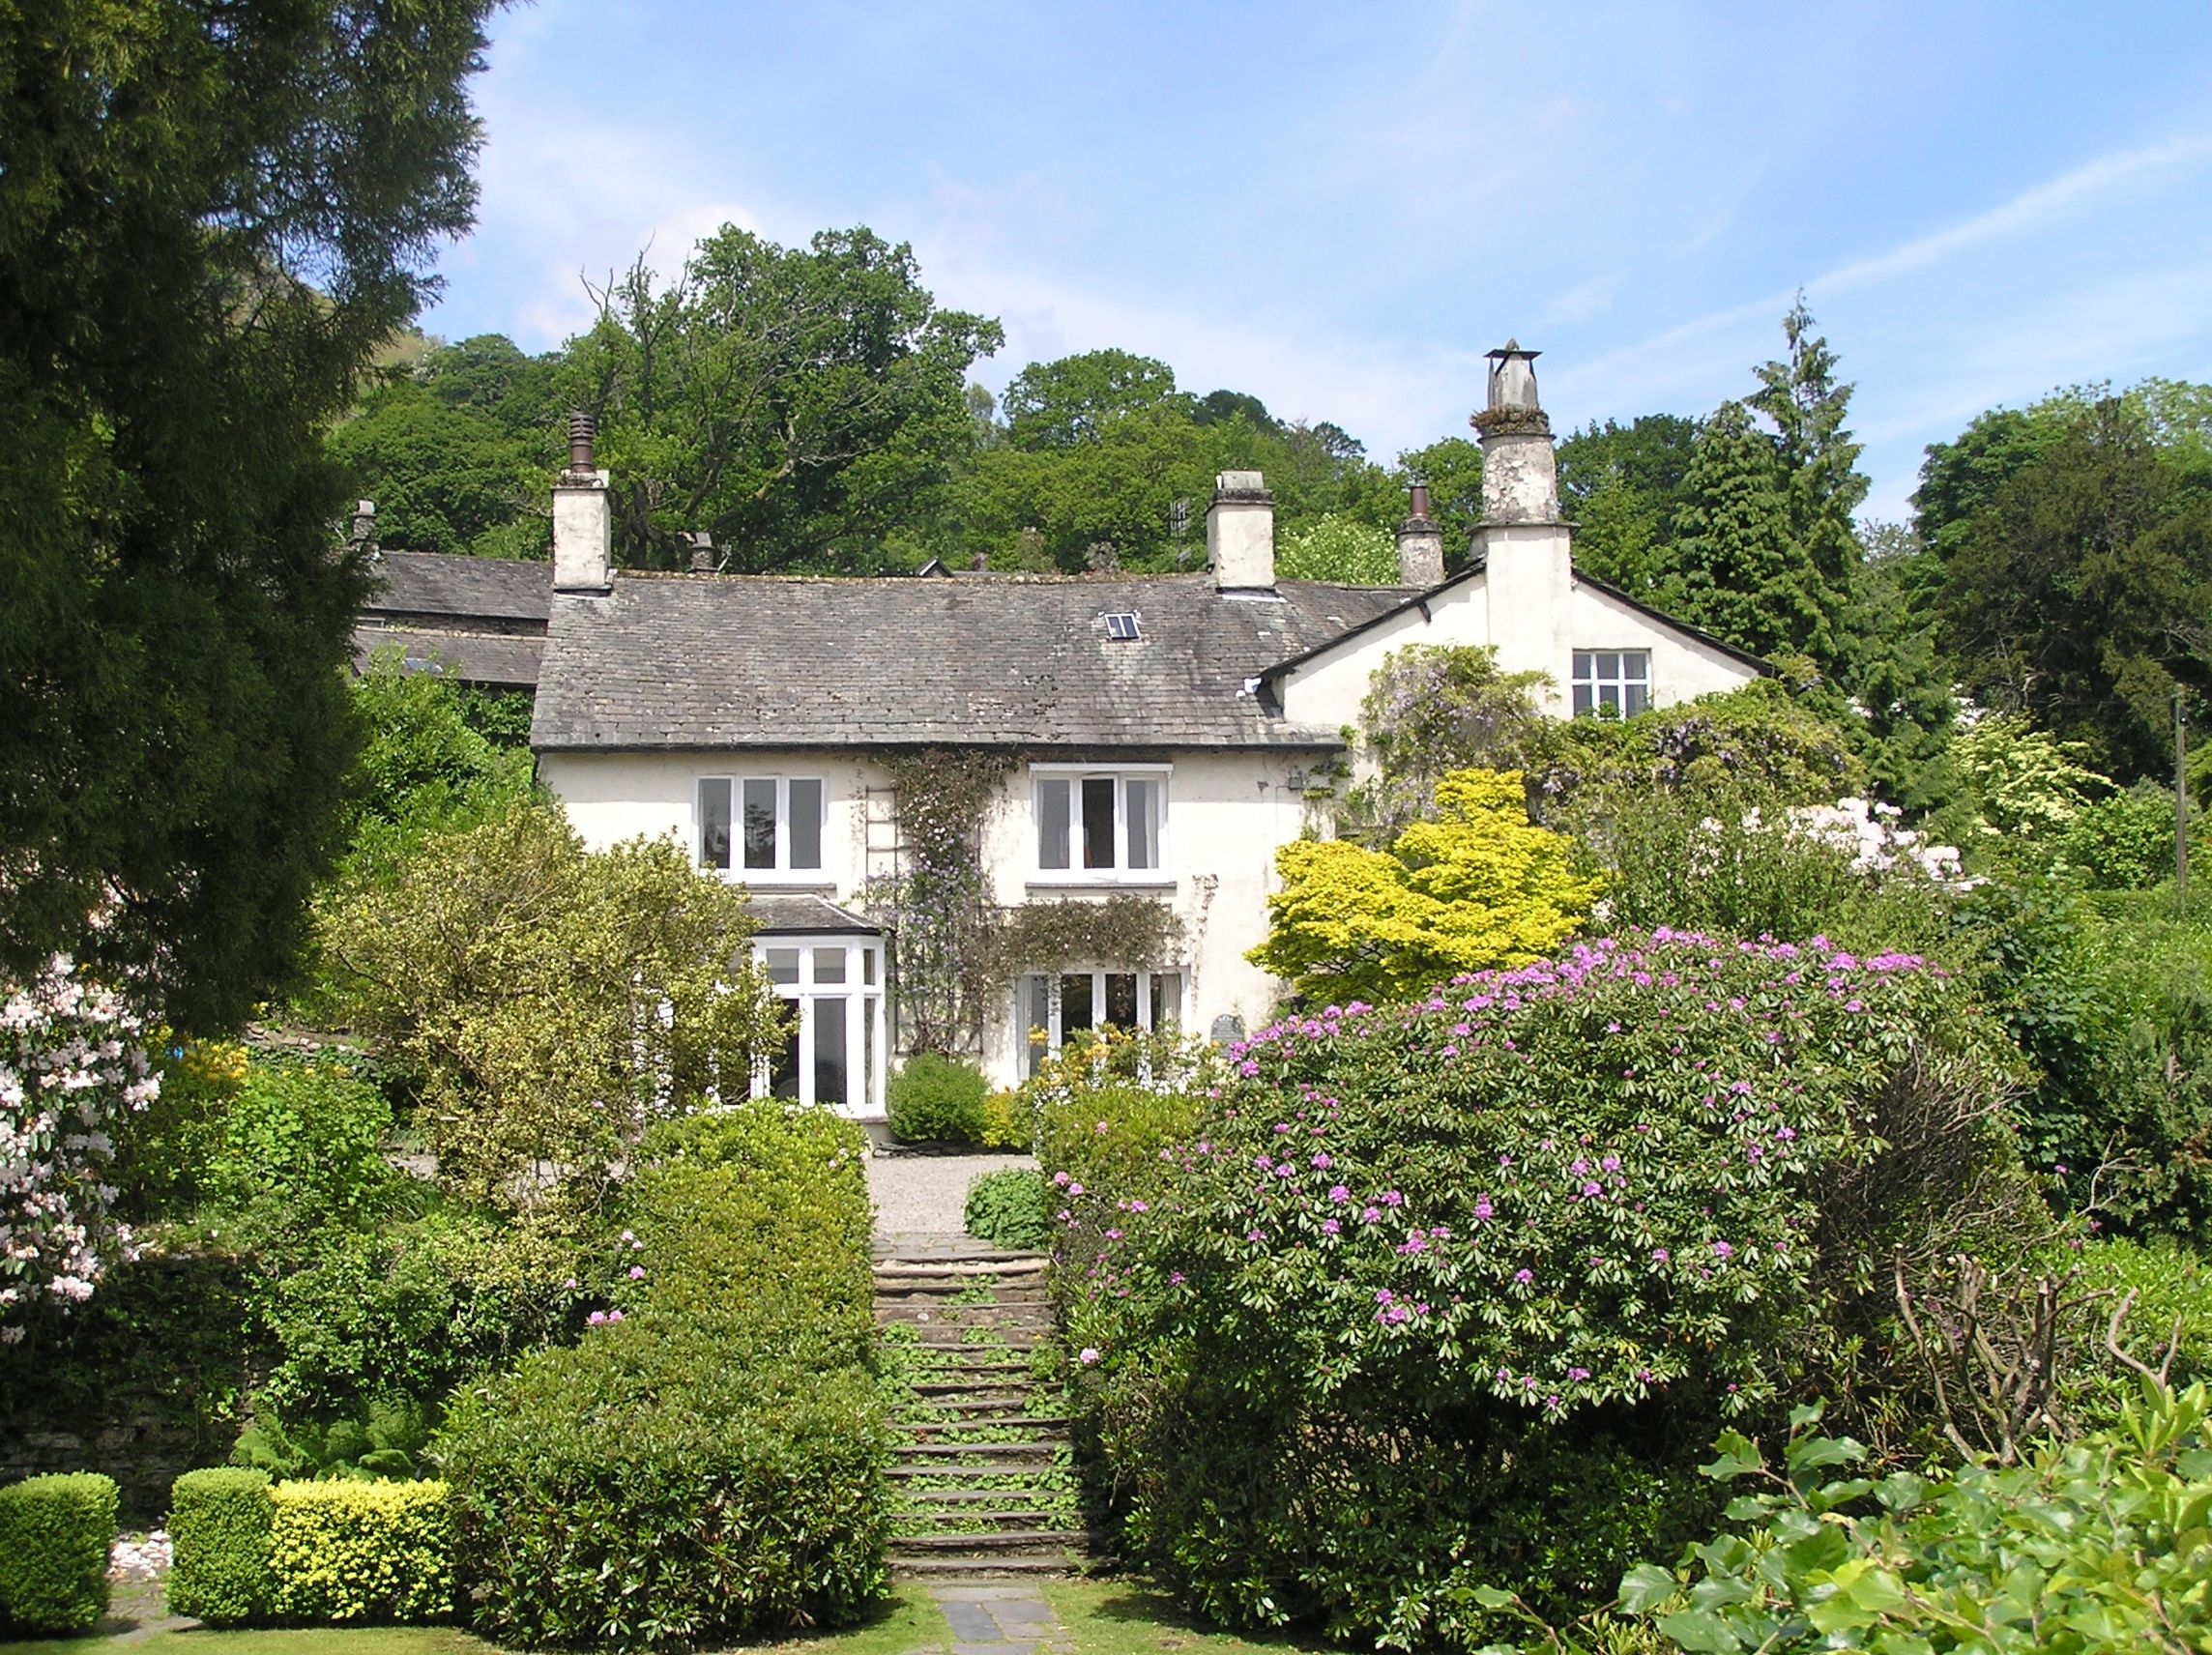 Dove Cottage Home Of William Wordsworth Grasmere England Letteratura Inglese Composed Upon Westminster Bridge September 3 1802 By Summary